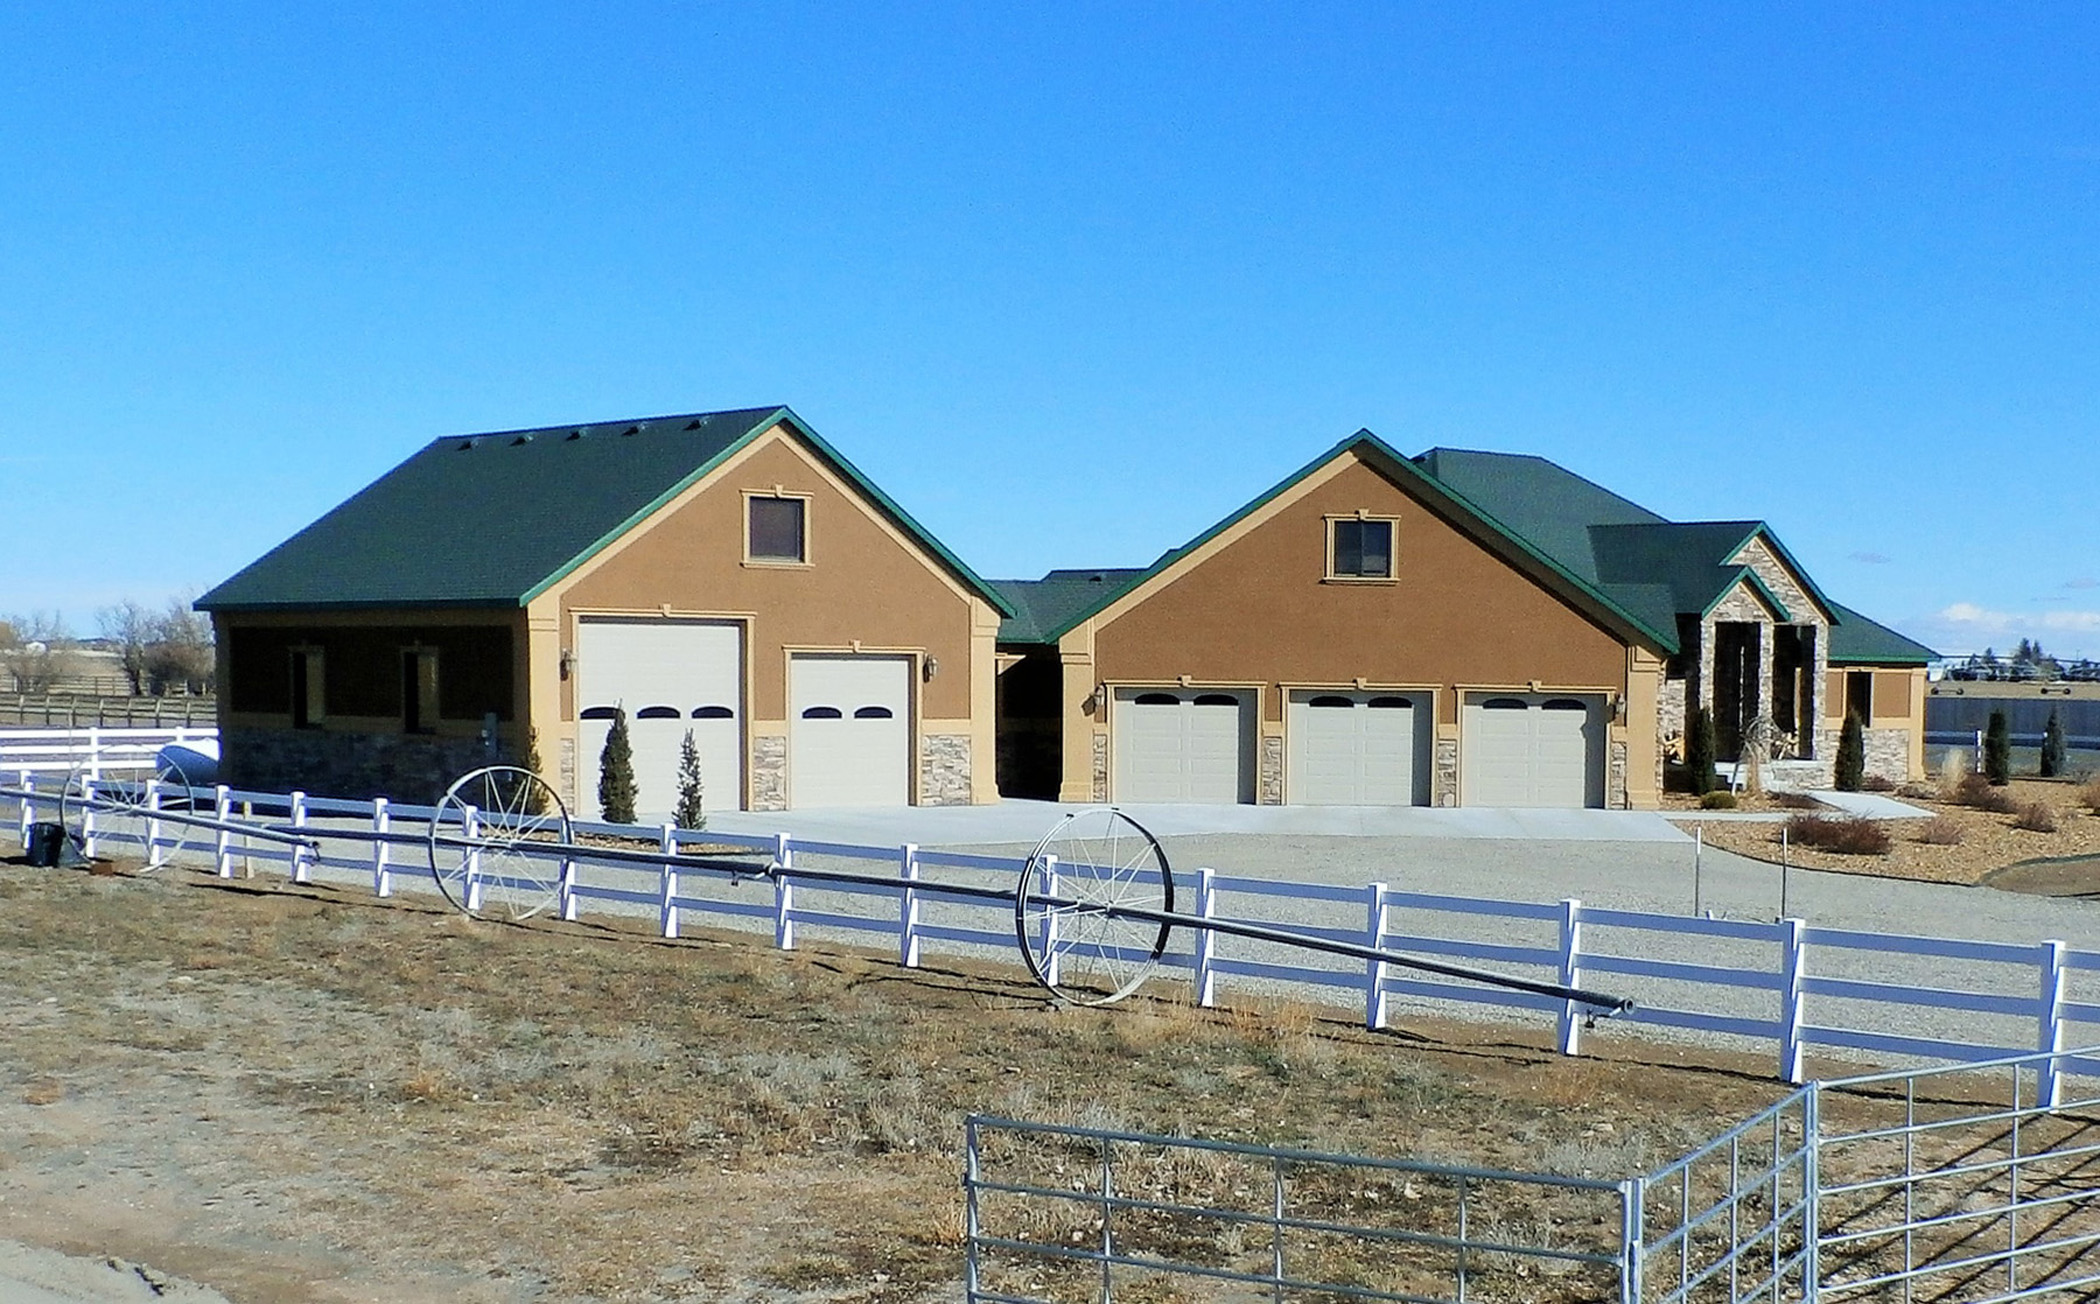 Ferme / Ranch / Plantation pour l Vente à Indoor Riding Arena and Two Custom Homes 258, 256 and 262 West 250 North Blackfoot, Idaho 83221 États-Unis